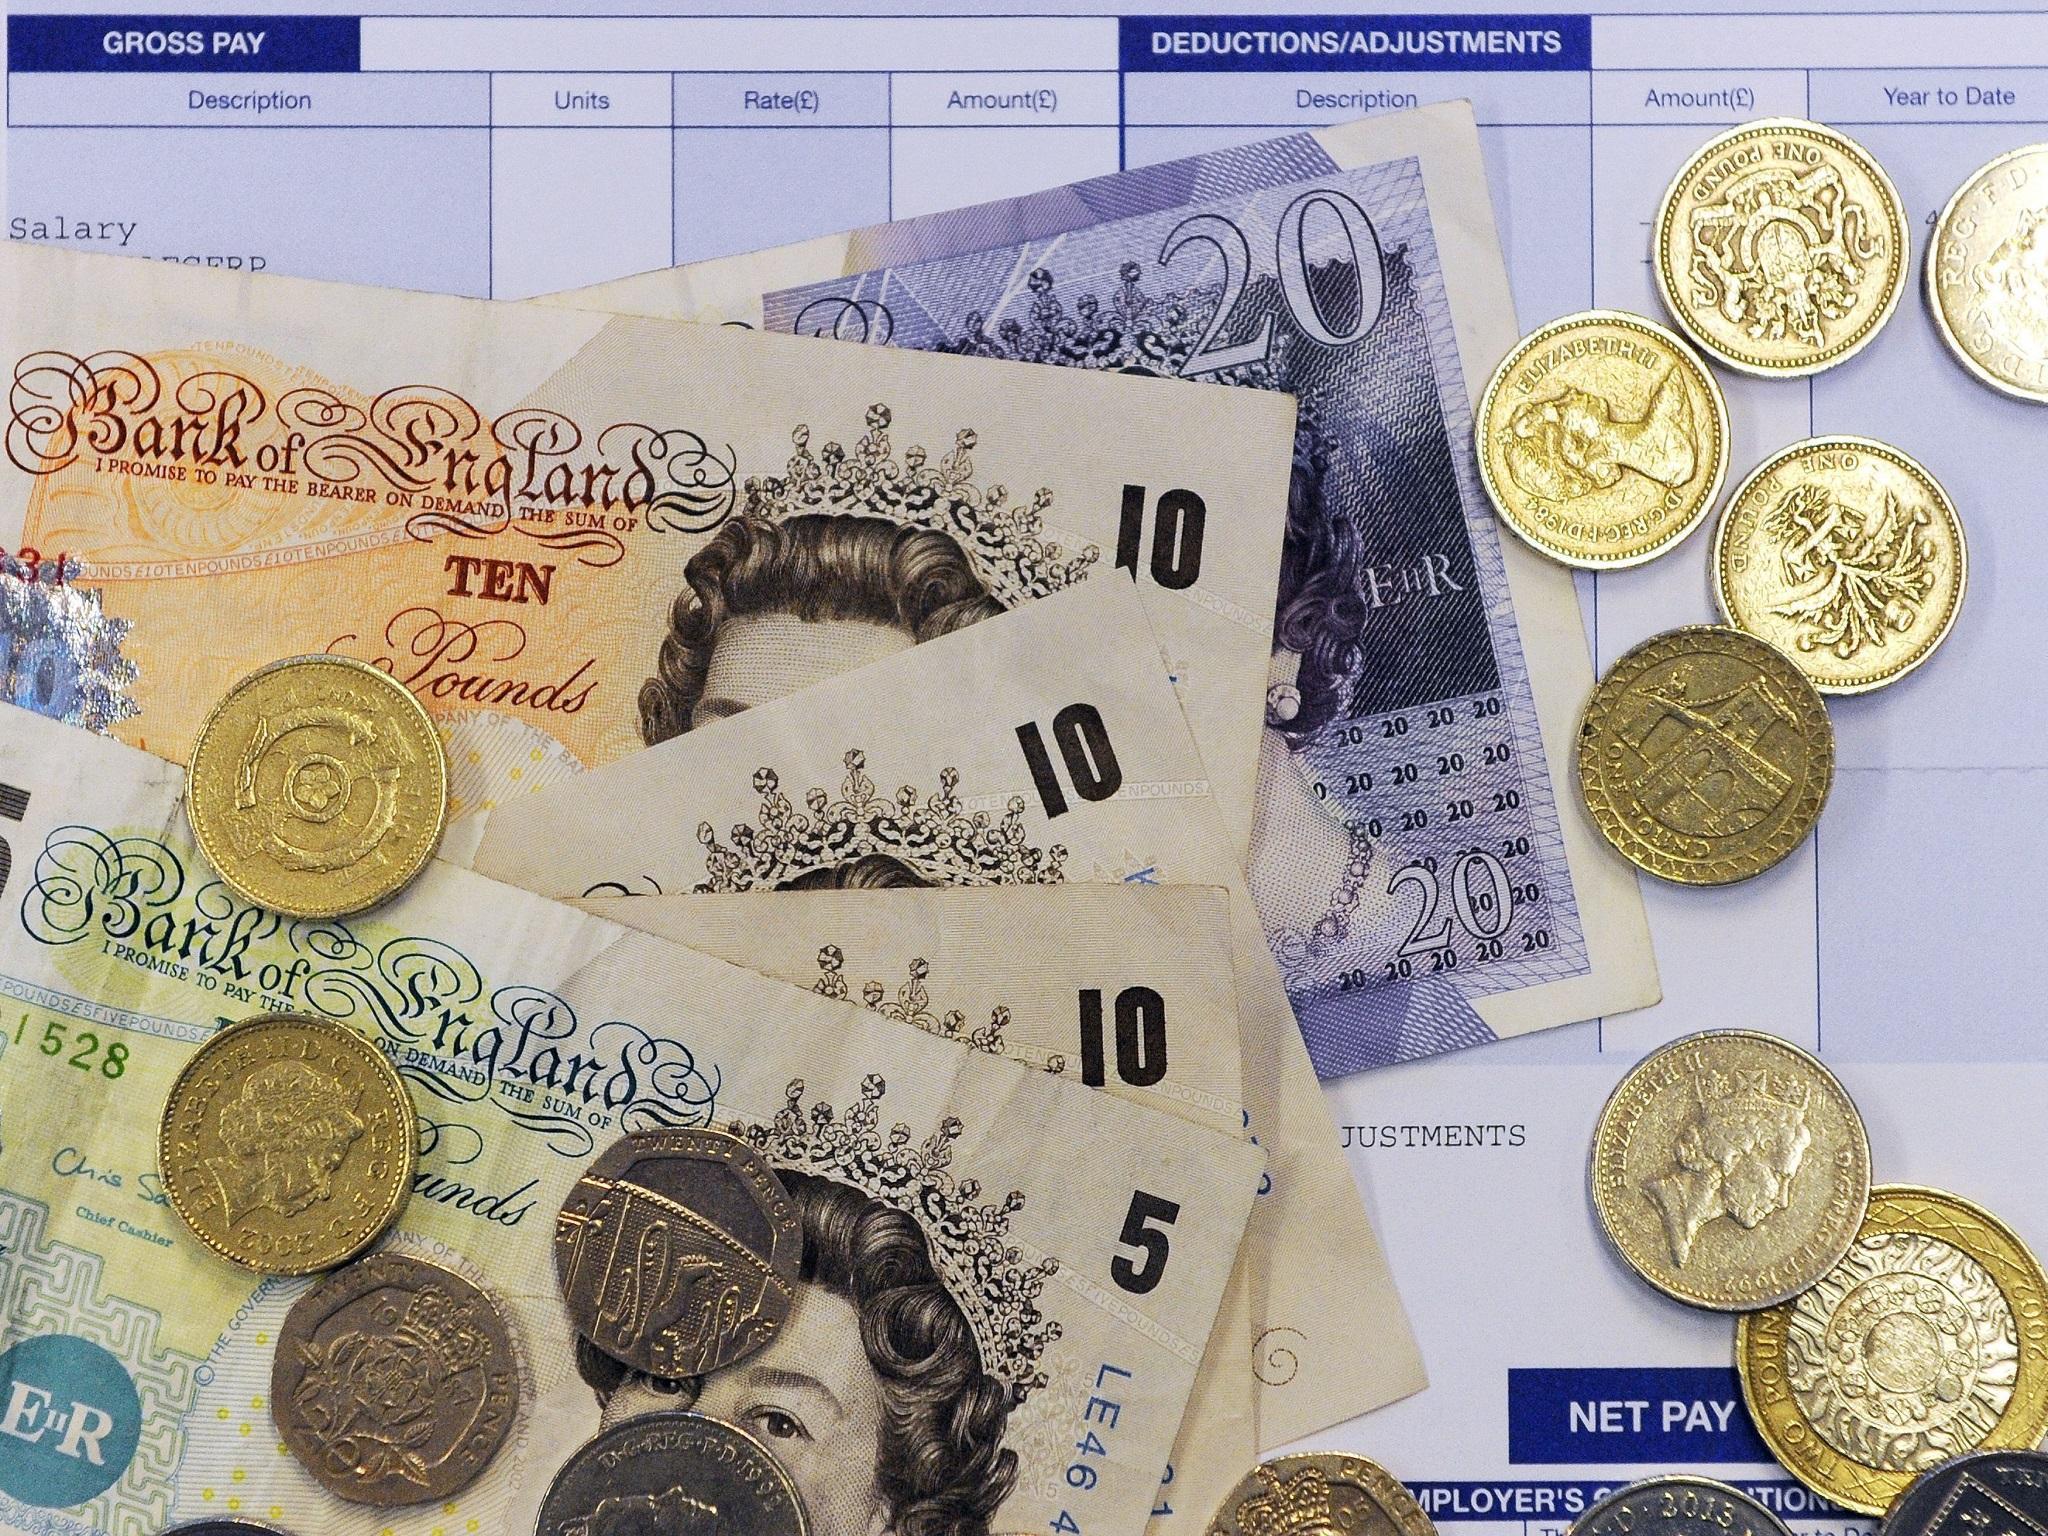 National living wage hike is justified despite impending recession, says think tank